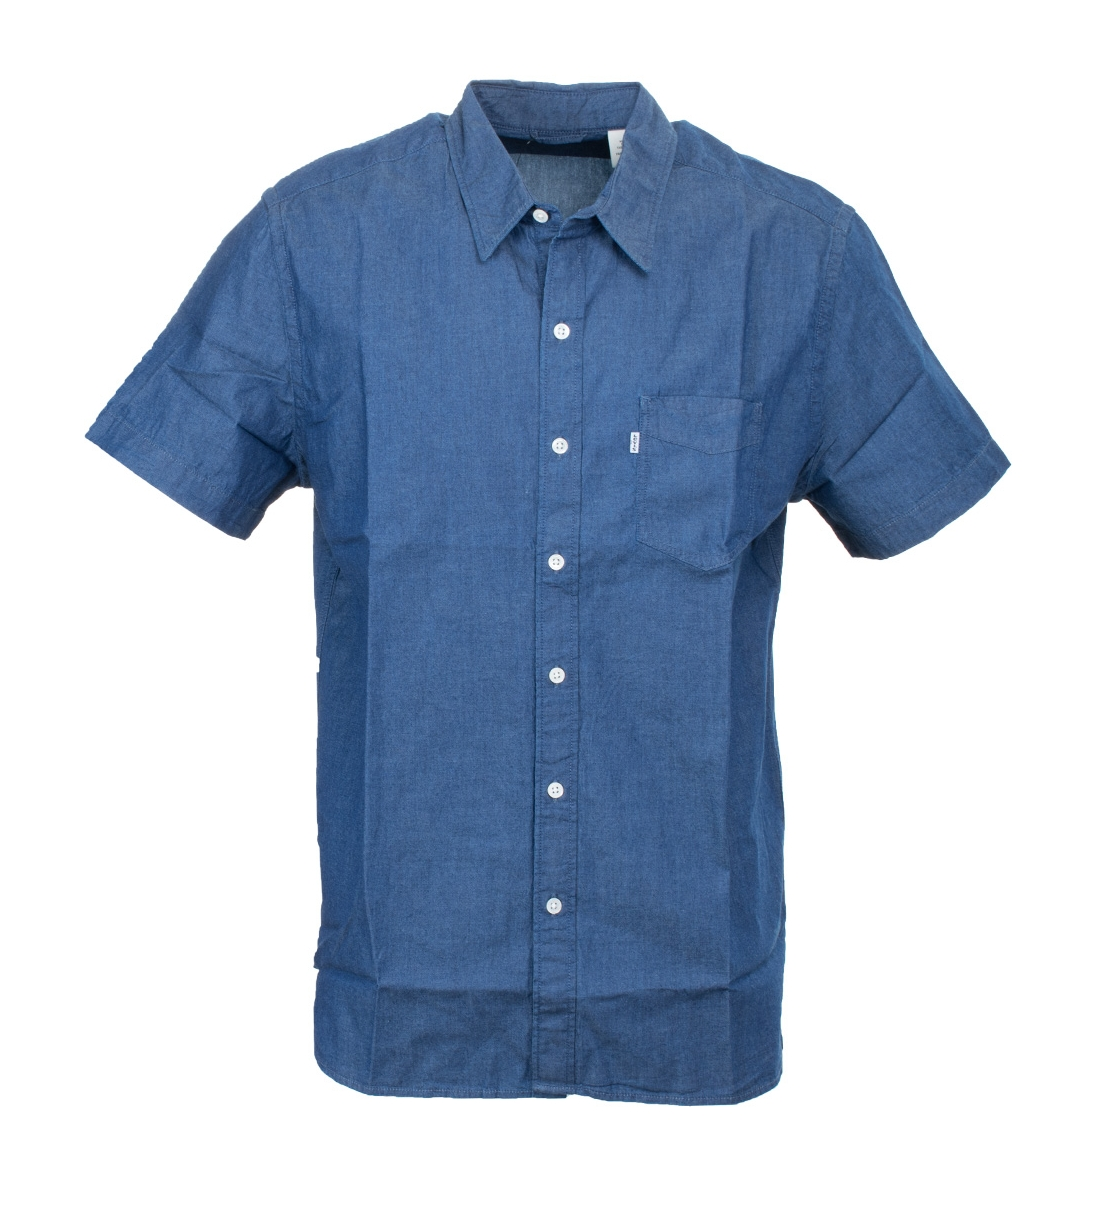 Levis Ανδρικό Πουκάμισο Ss18 S/S Sunset 1 Pkt Shirt Blue Shade Indi 65826-0137